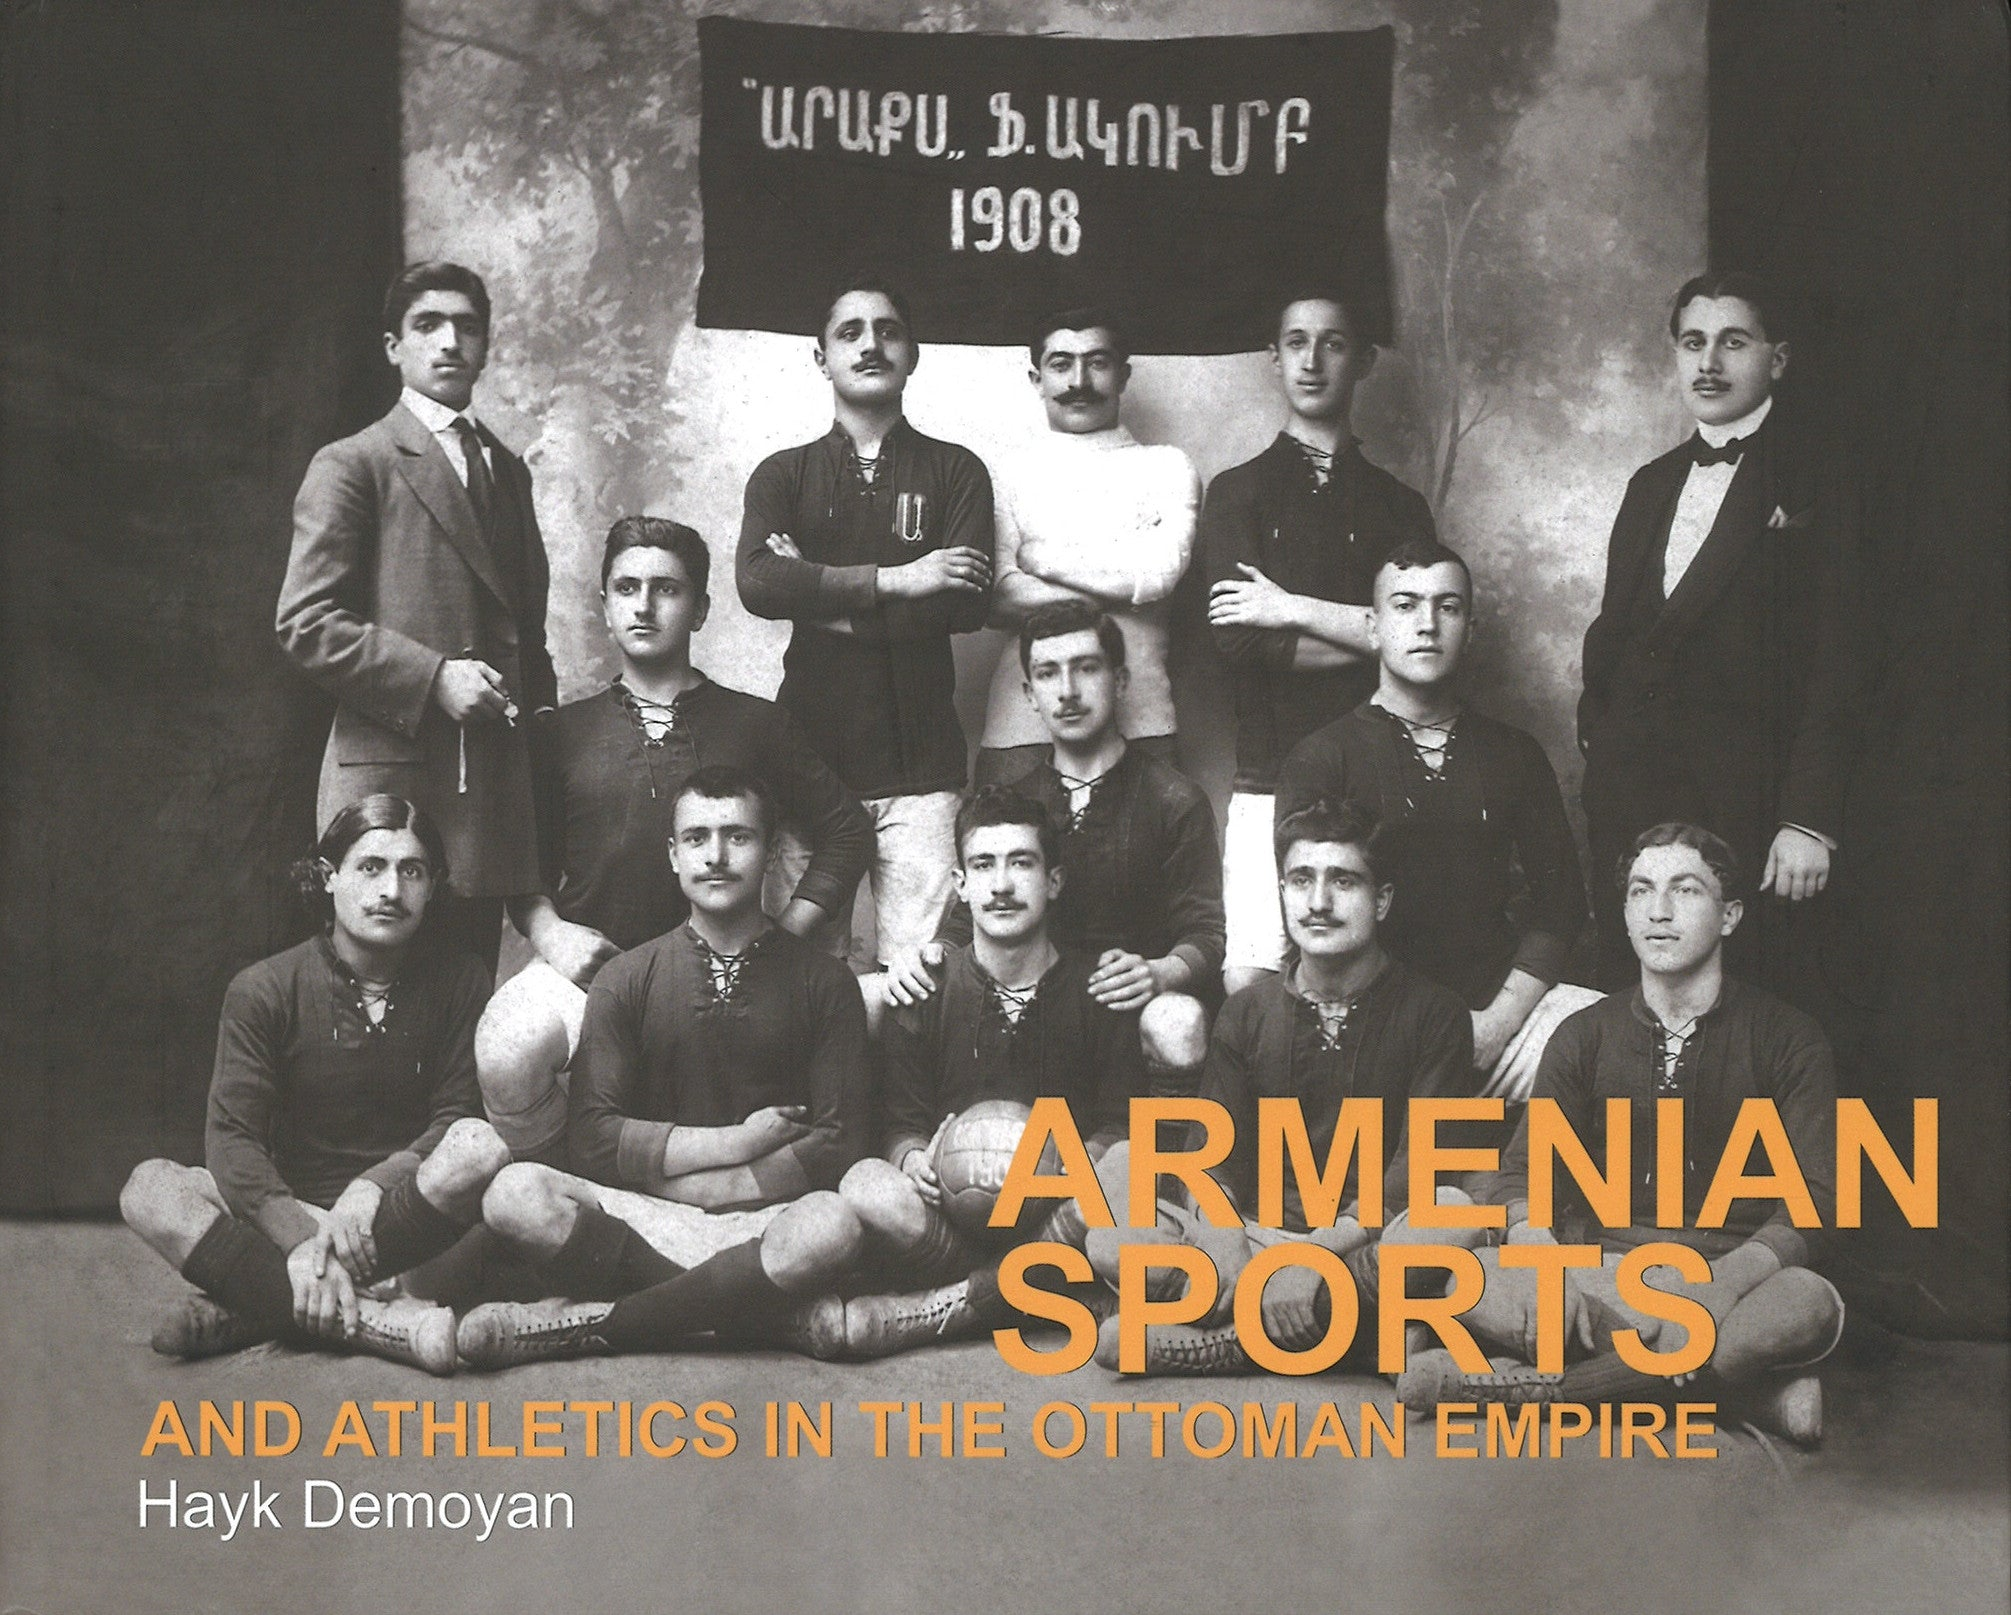 ARMENIAN SPORTS AND ATHLETICS IN THE OTTOMAN EMPIRE